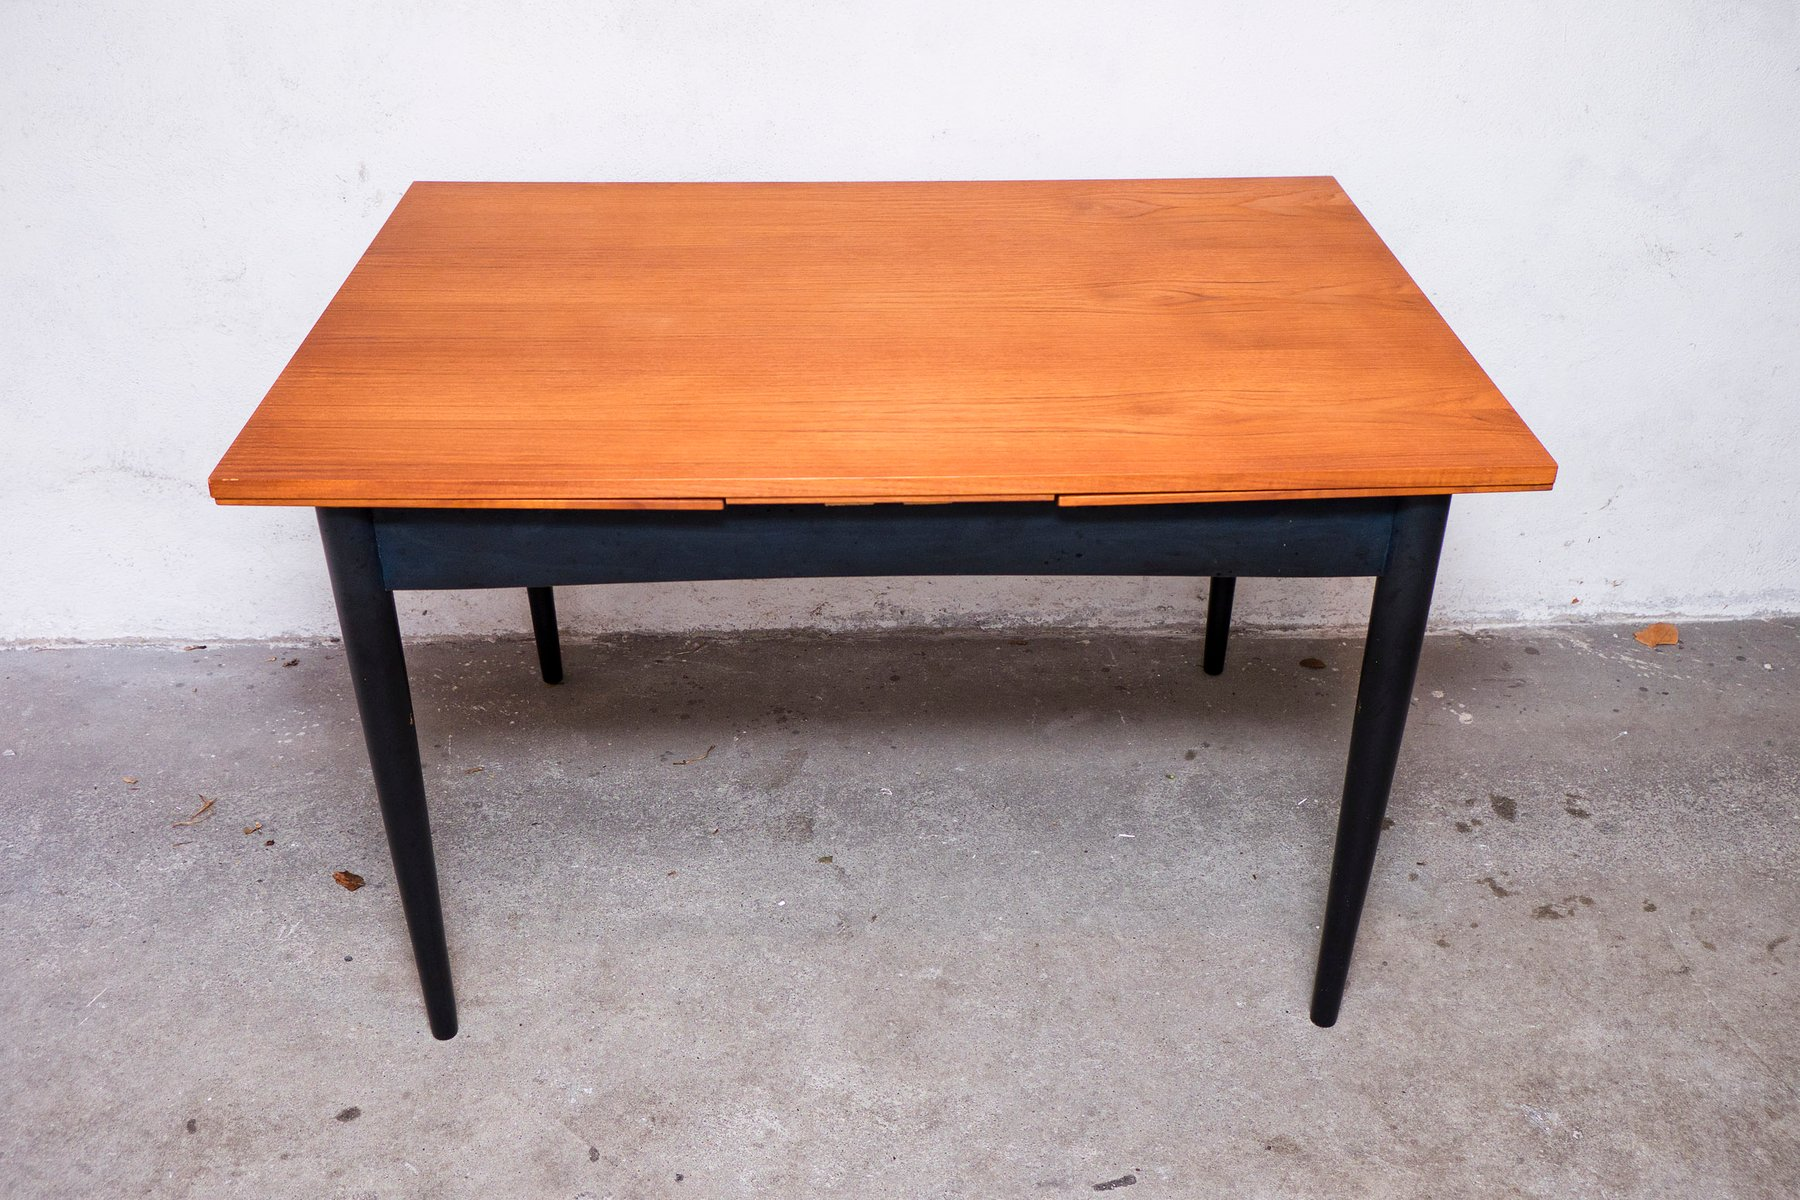 table de salle manger scandinave en teck 1960s en vente sur pamono. Black Bedroom Furniture Sets. Home Design Ideas